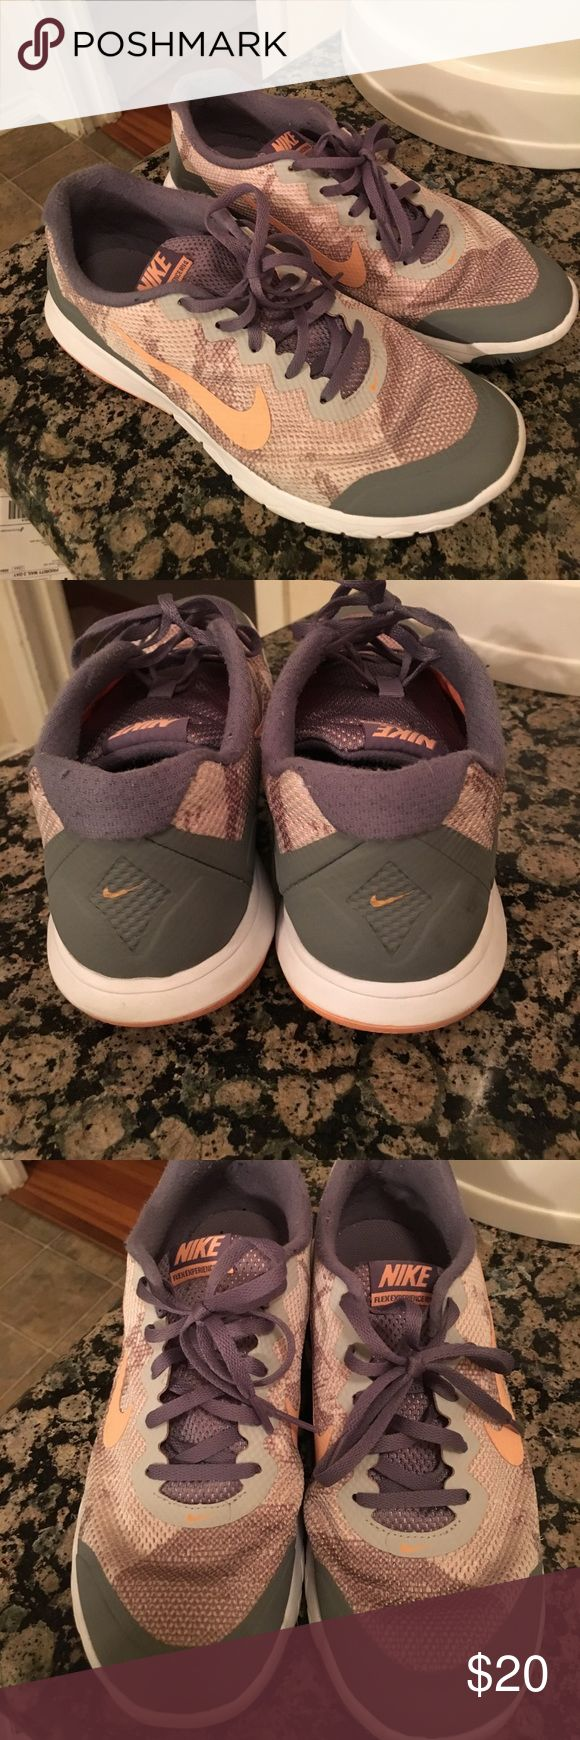 Nike Flex Experience RN4 Very good condition. Super cute pattern! No big signs of wear except for what is pictured. Nike Shoes